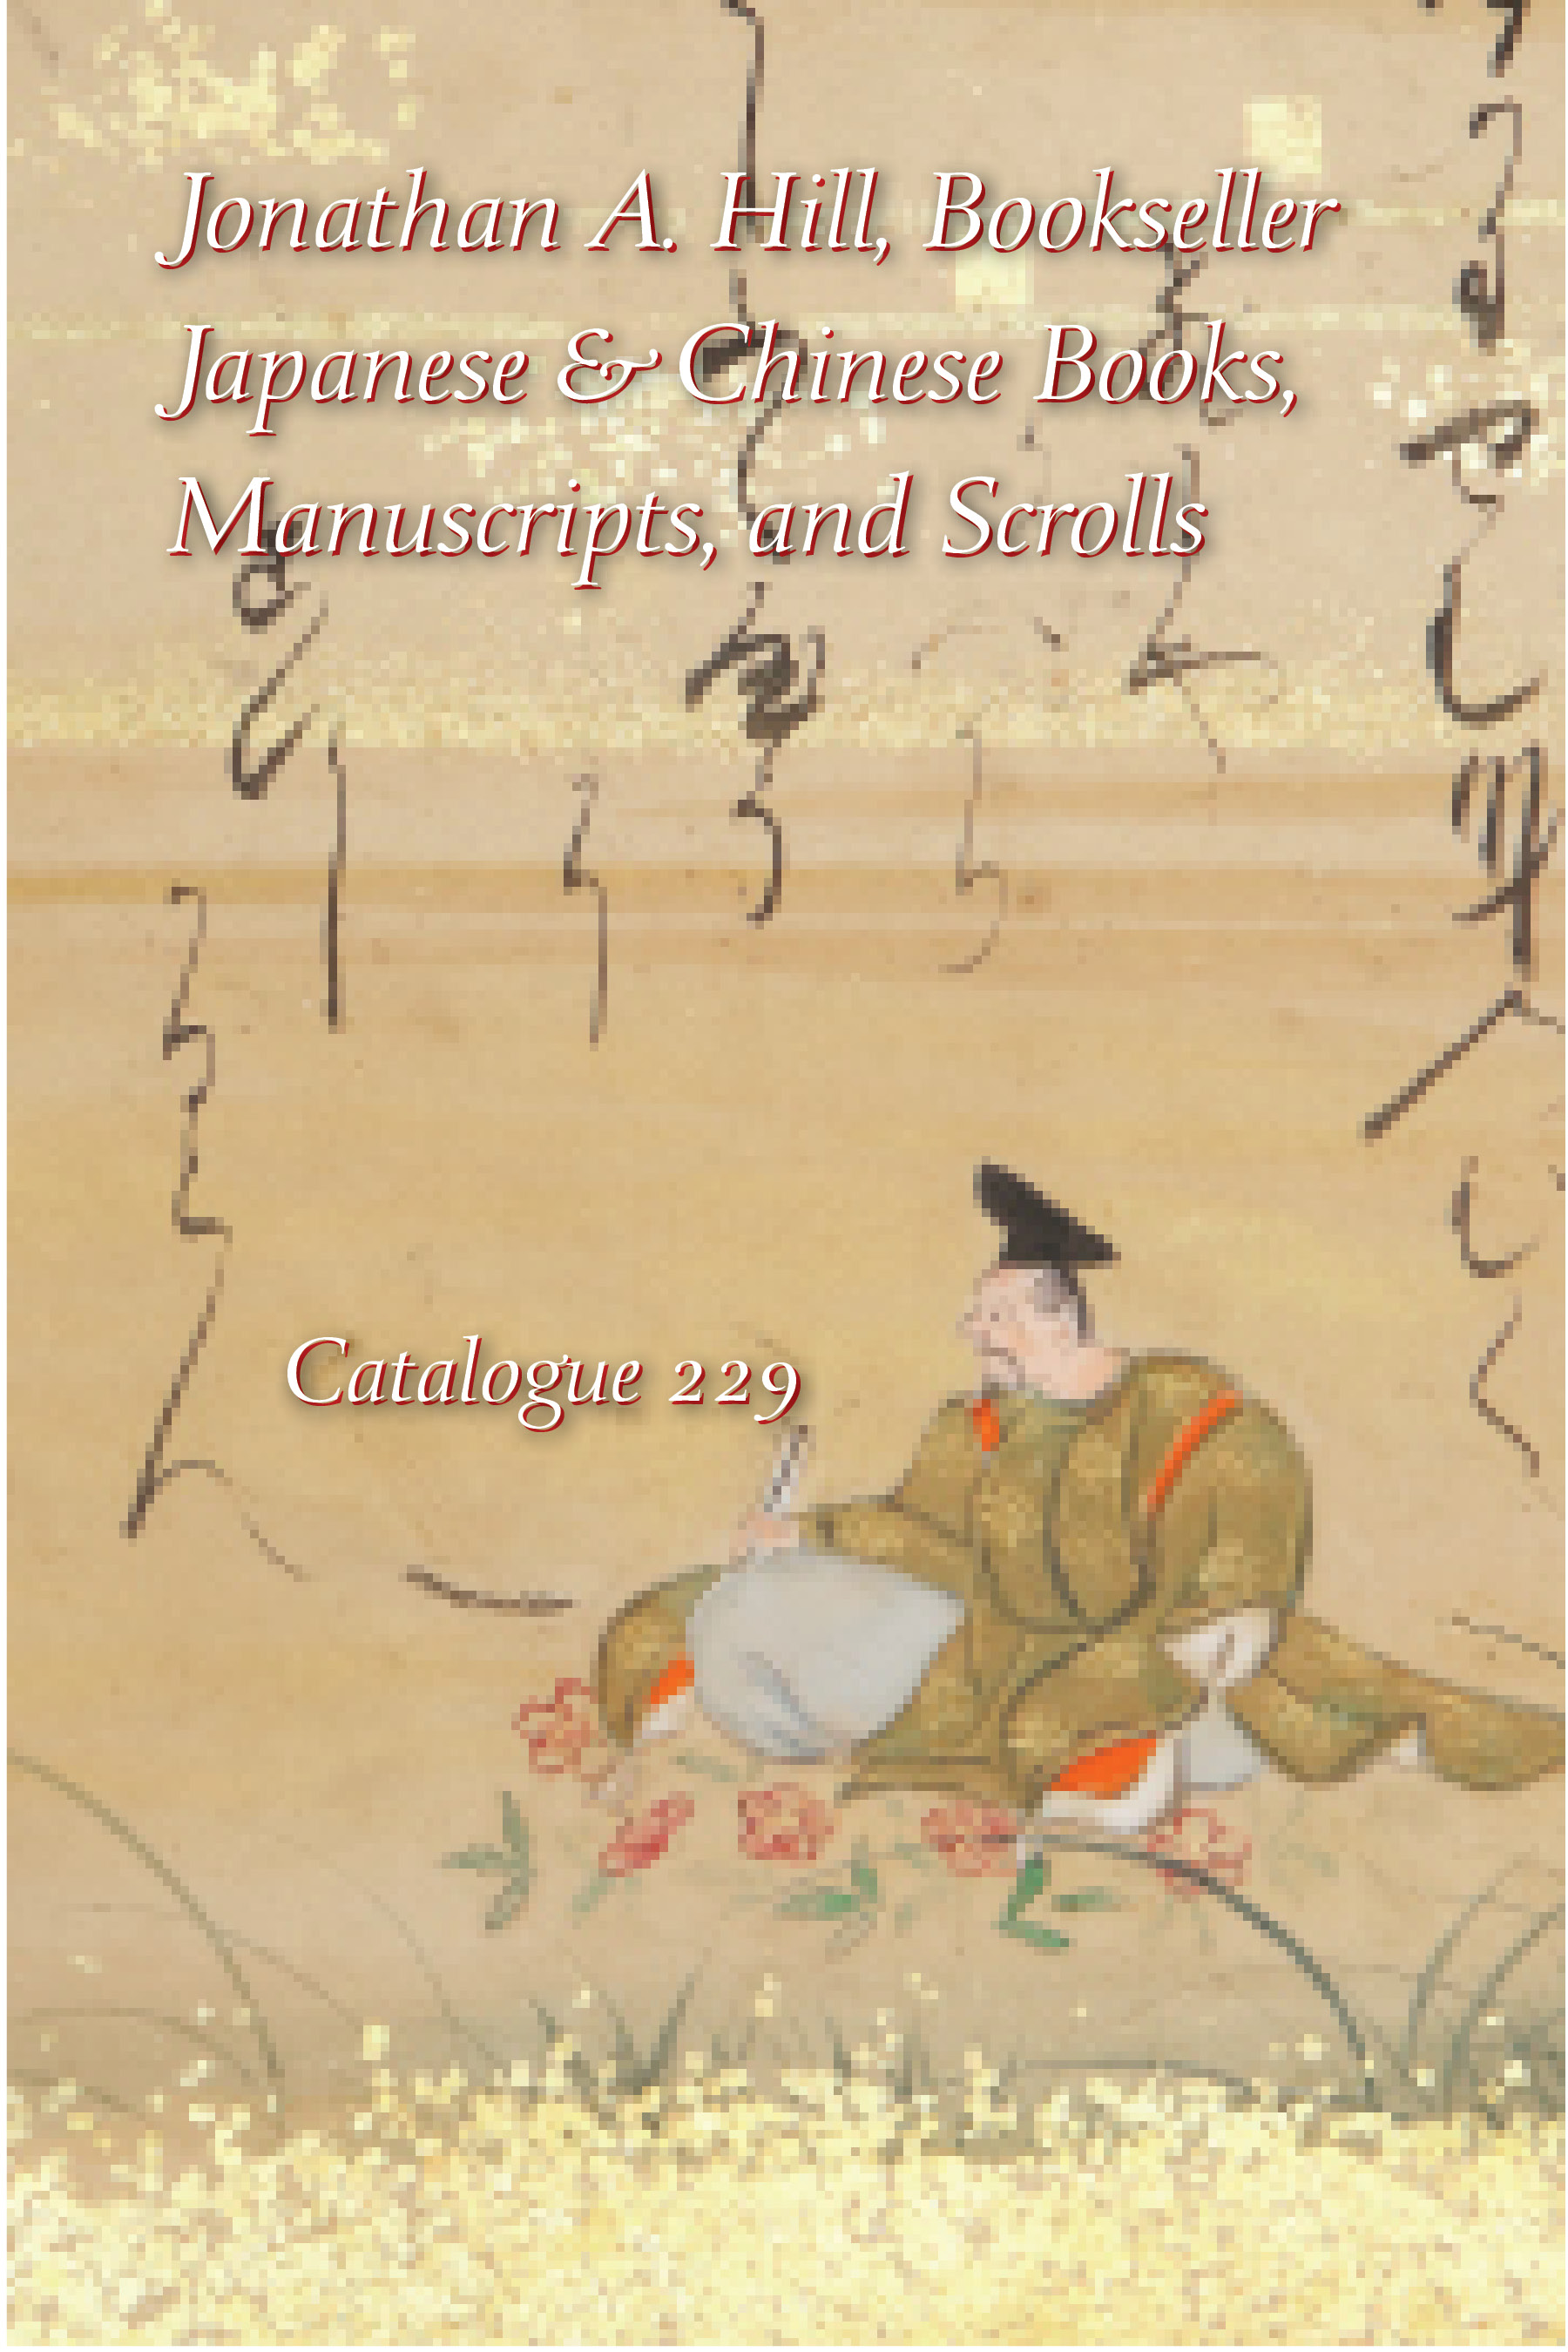 Catalogue 229